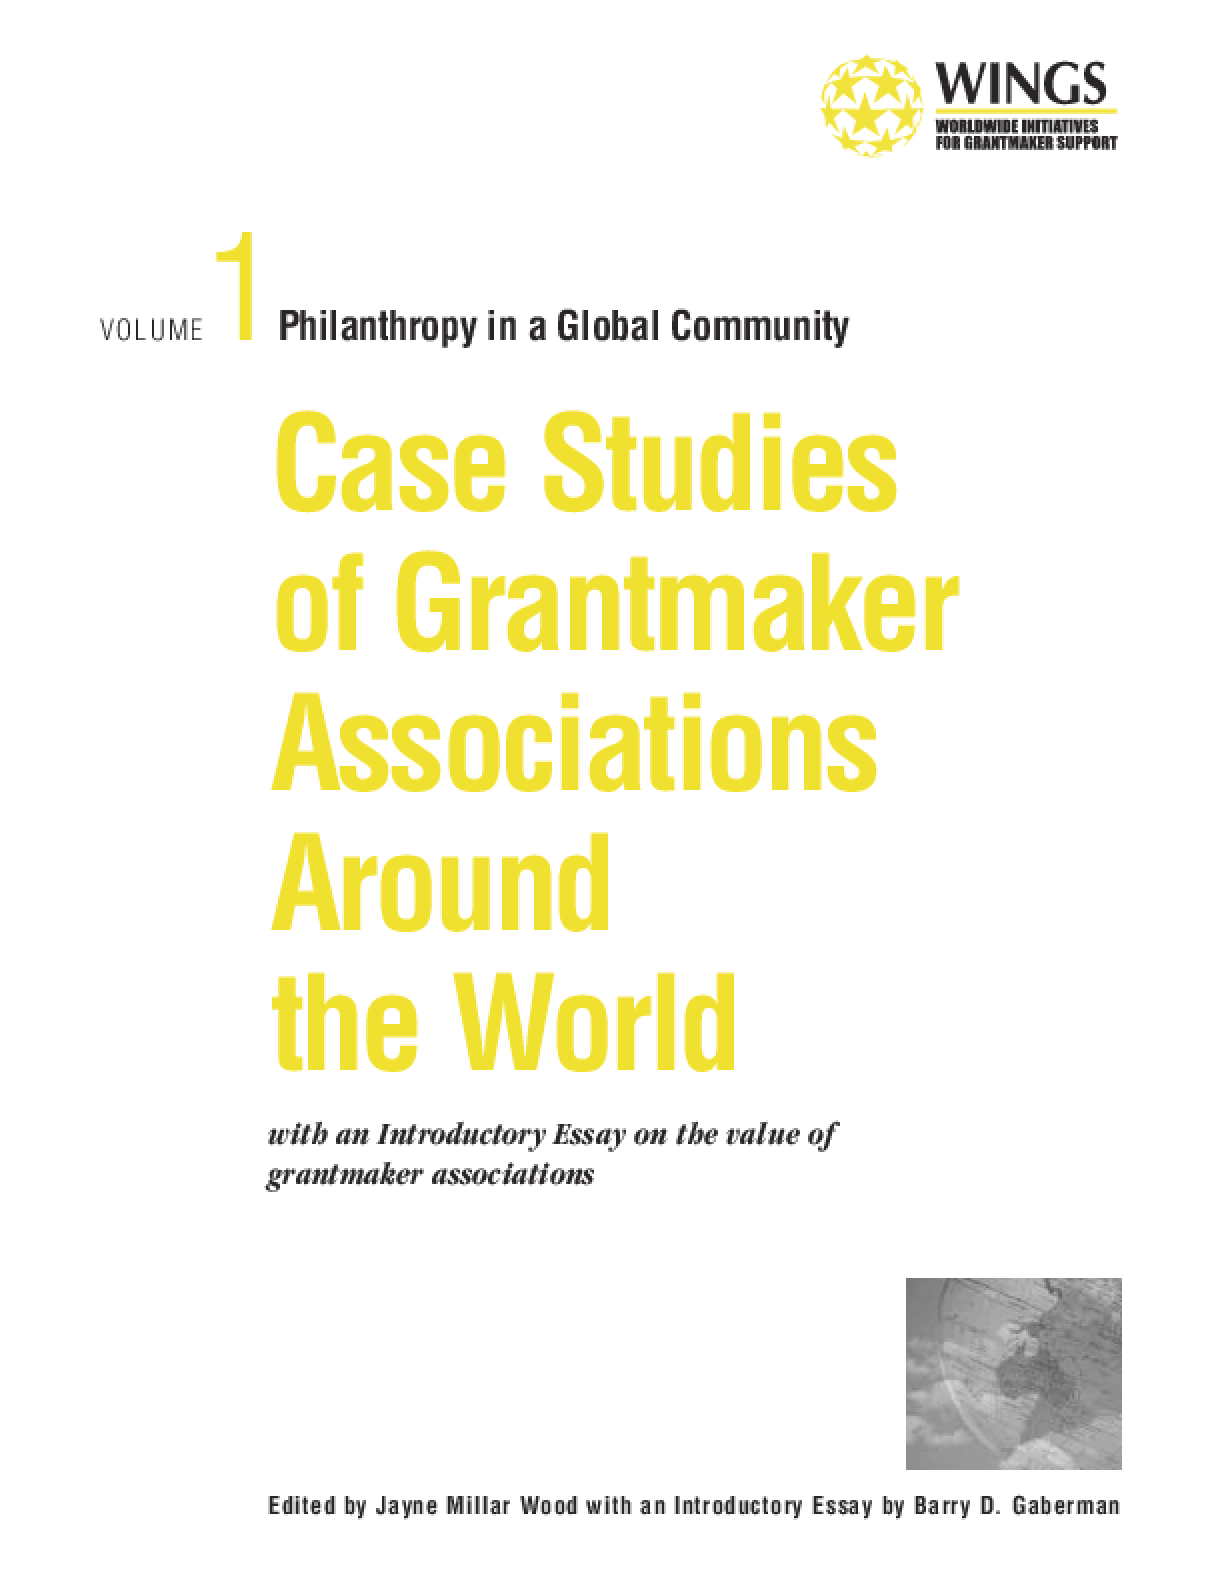 Philanthropy in a Global Community. Volume 1, Case Studies of Grantmaker Associations Around the World